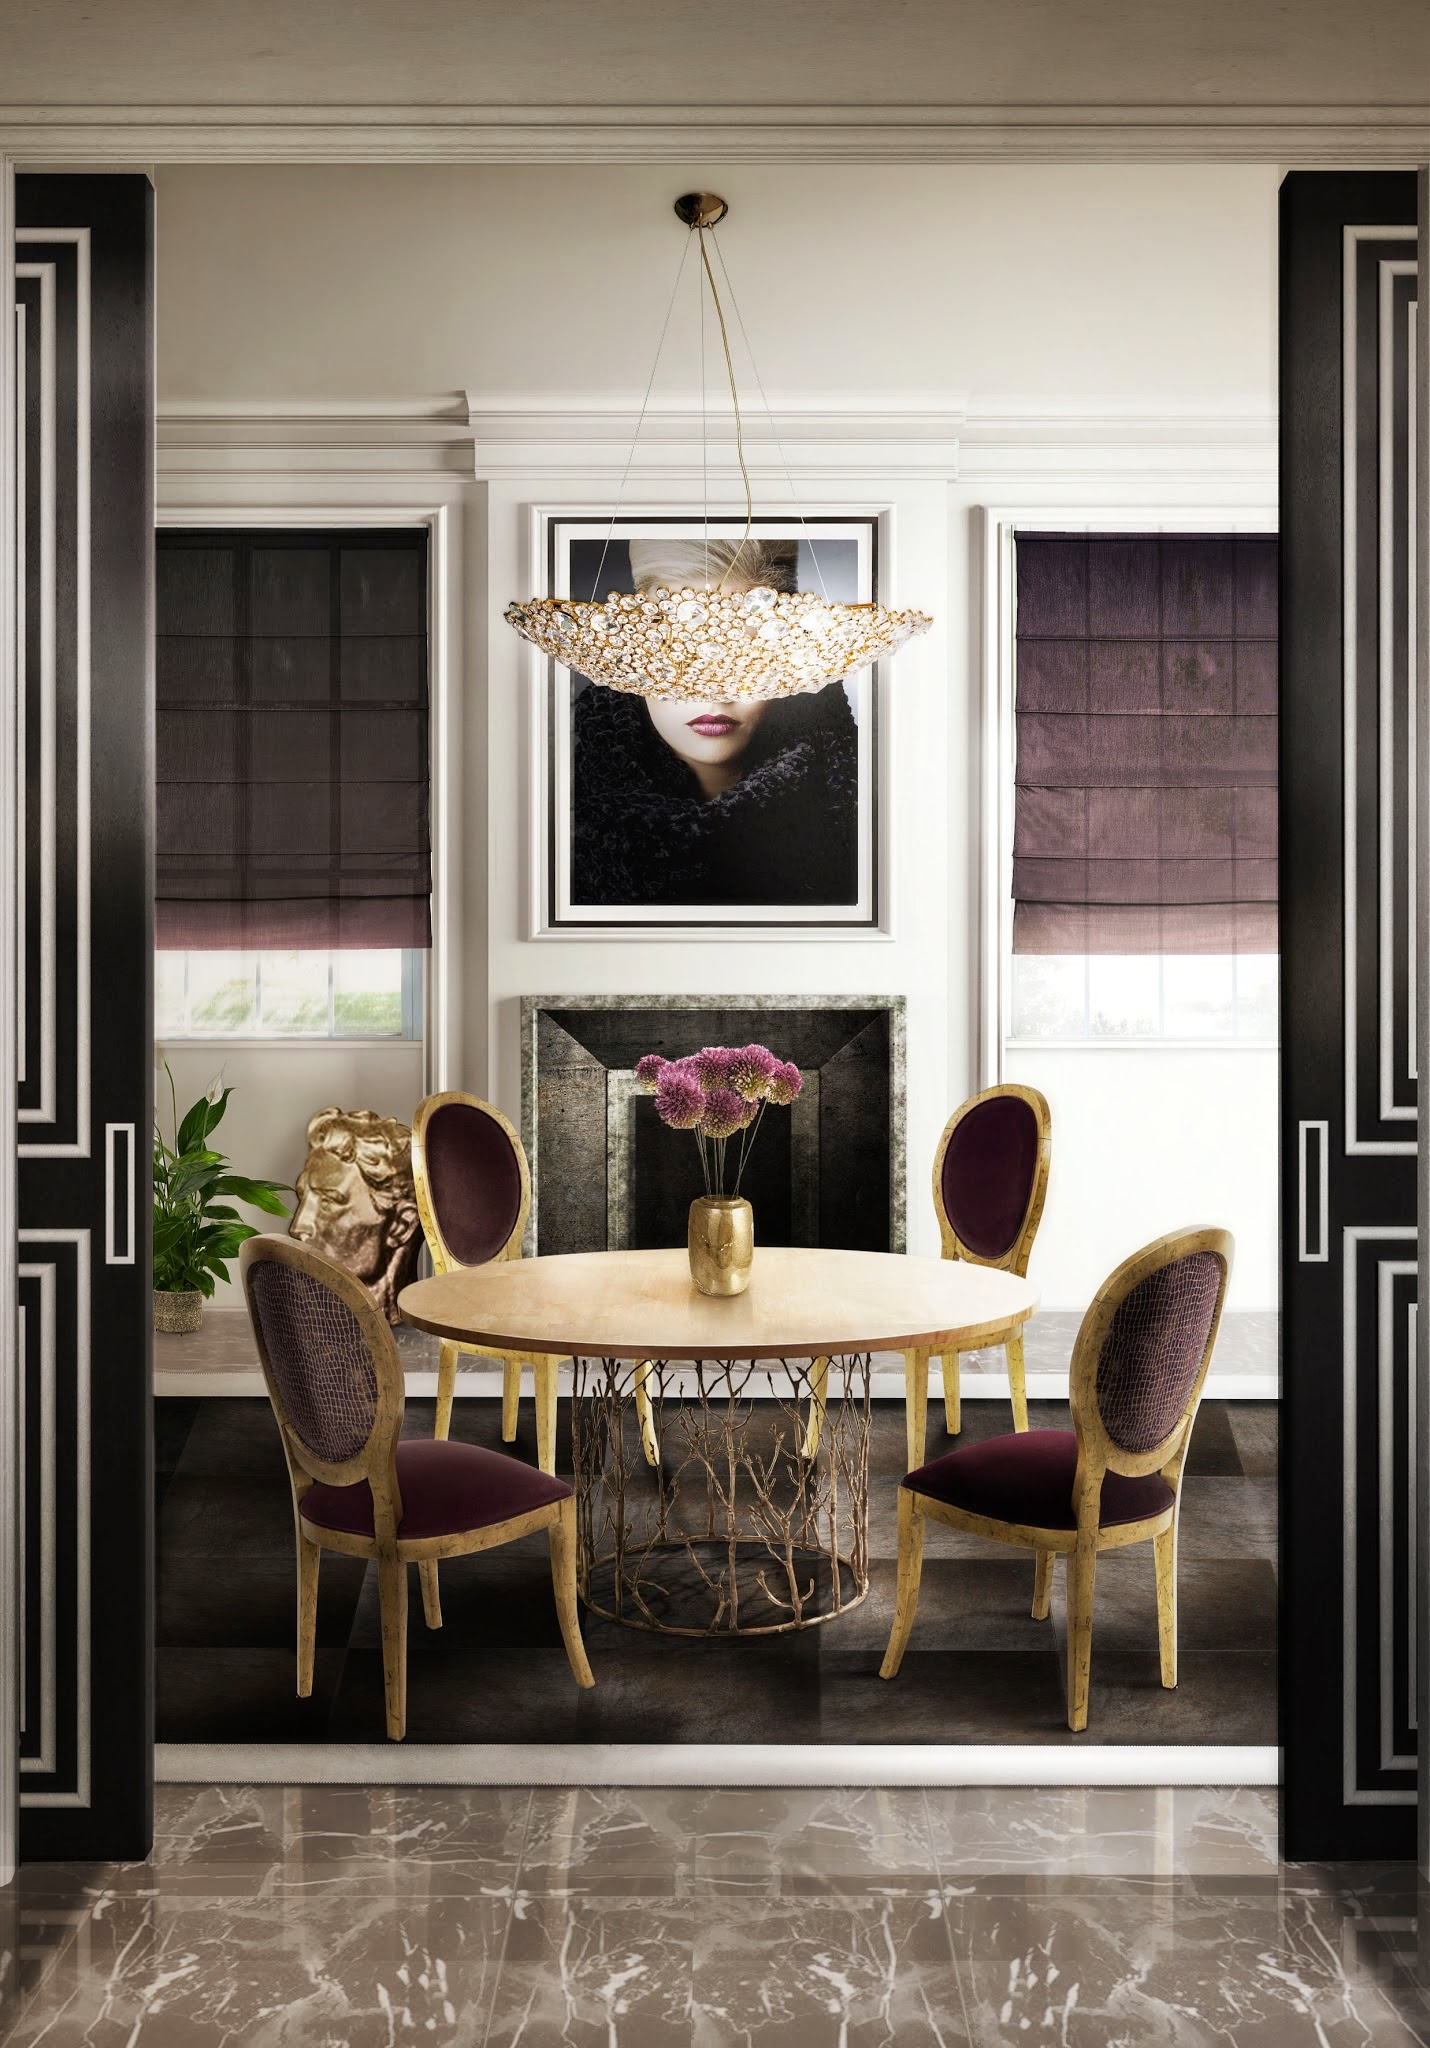 Design For Dining Room 10 Gorgeous Design Pieces To Create The Perfect Dining Room